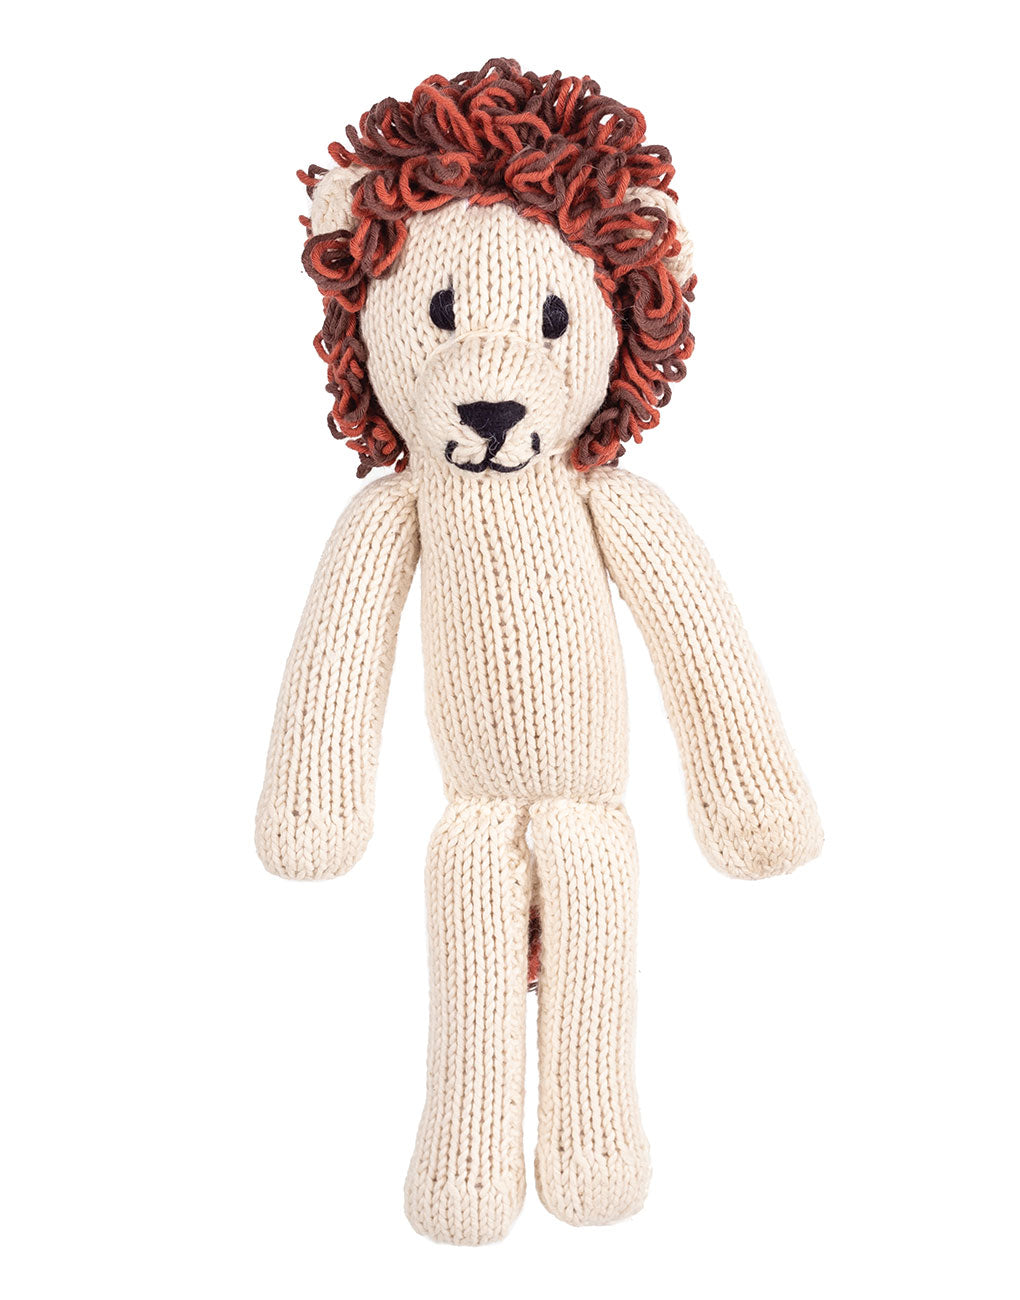 Organic Lion Stuffed Animal | The Little Market